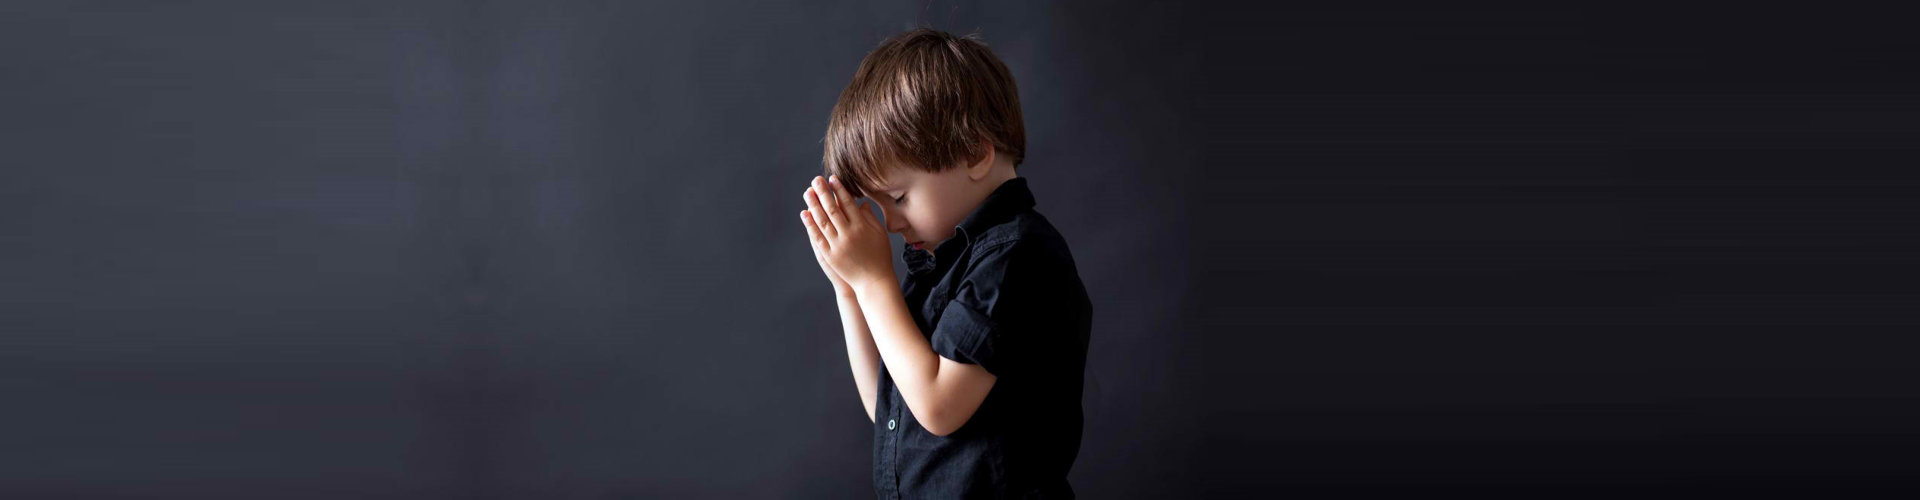 young man praying with clasped hand